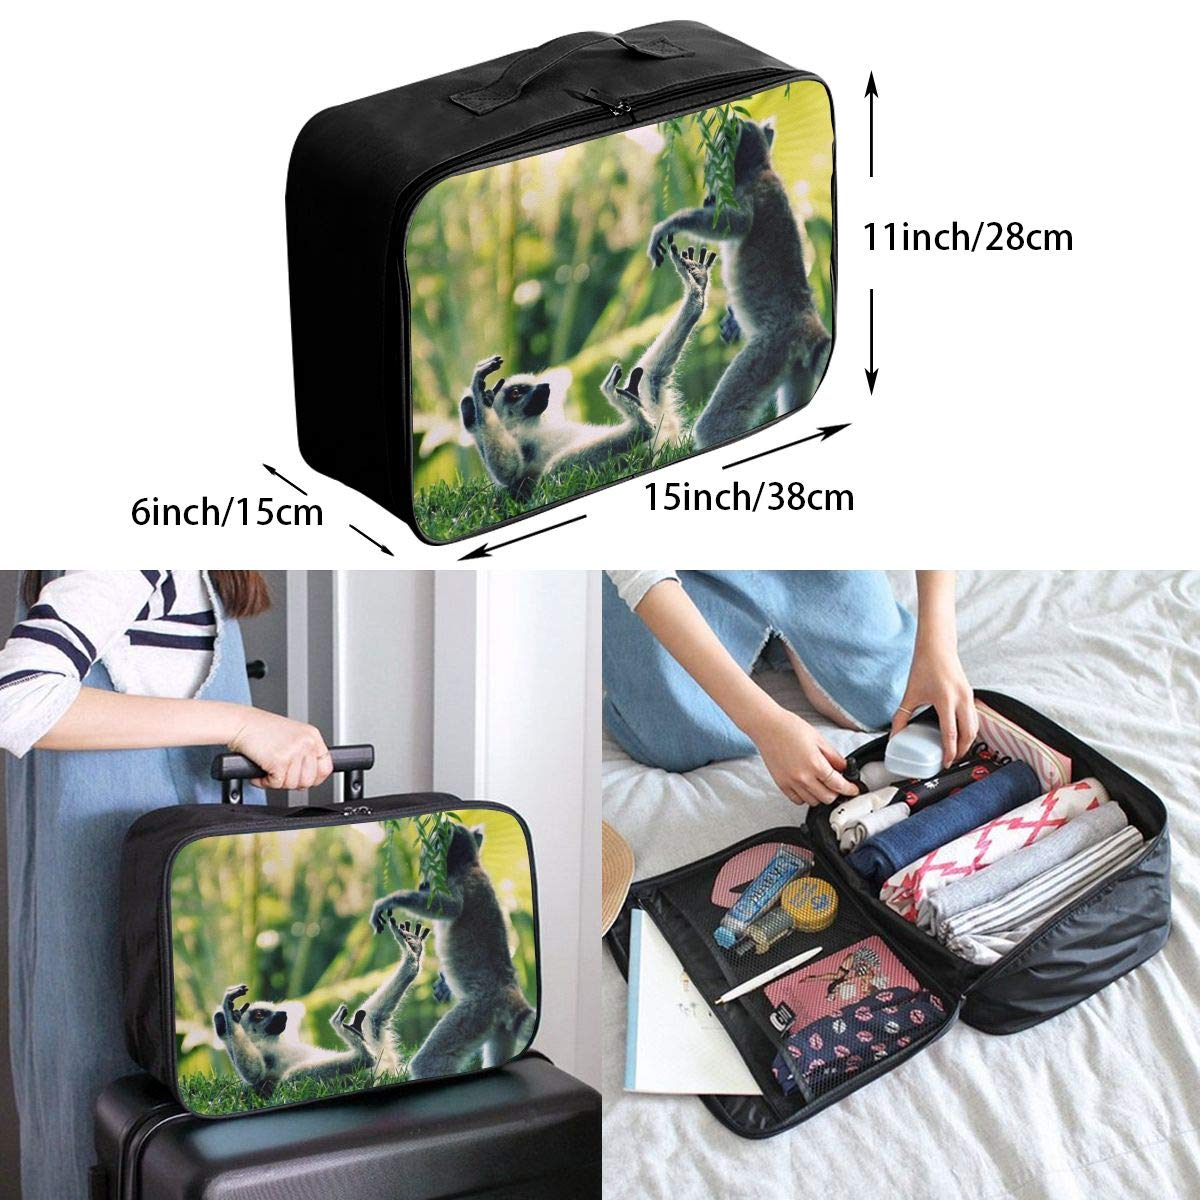 Travel Luggage Duffle Bag Lightweight Portable Handbag Animals Lemur Pattern Large Capacity Waterproof Foldable Storage Tote